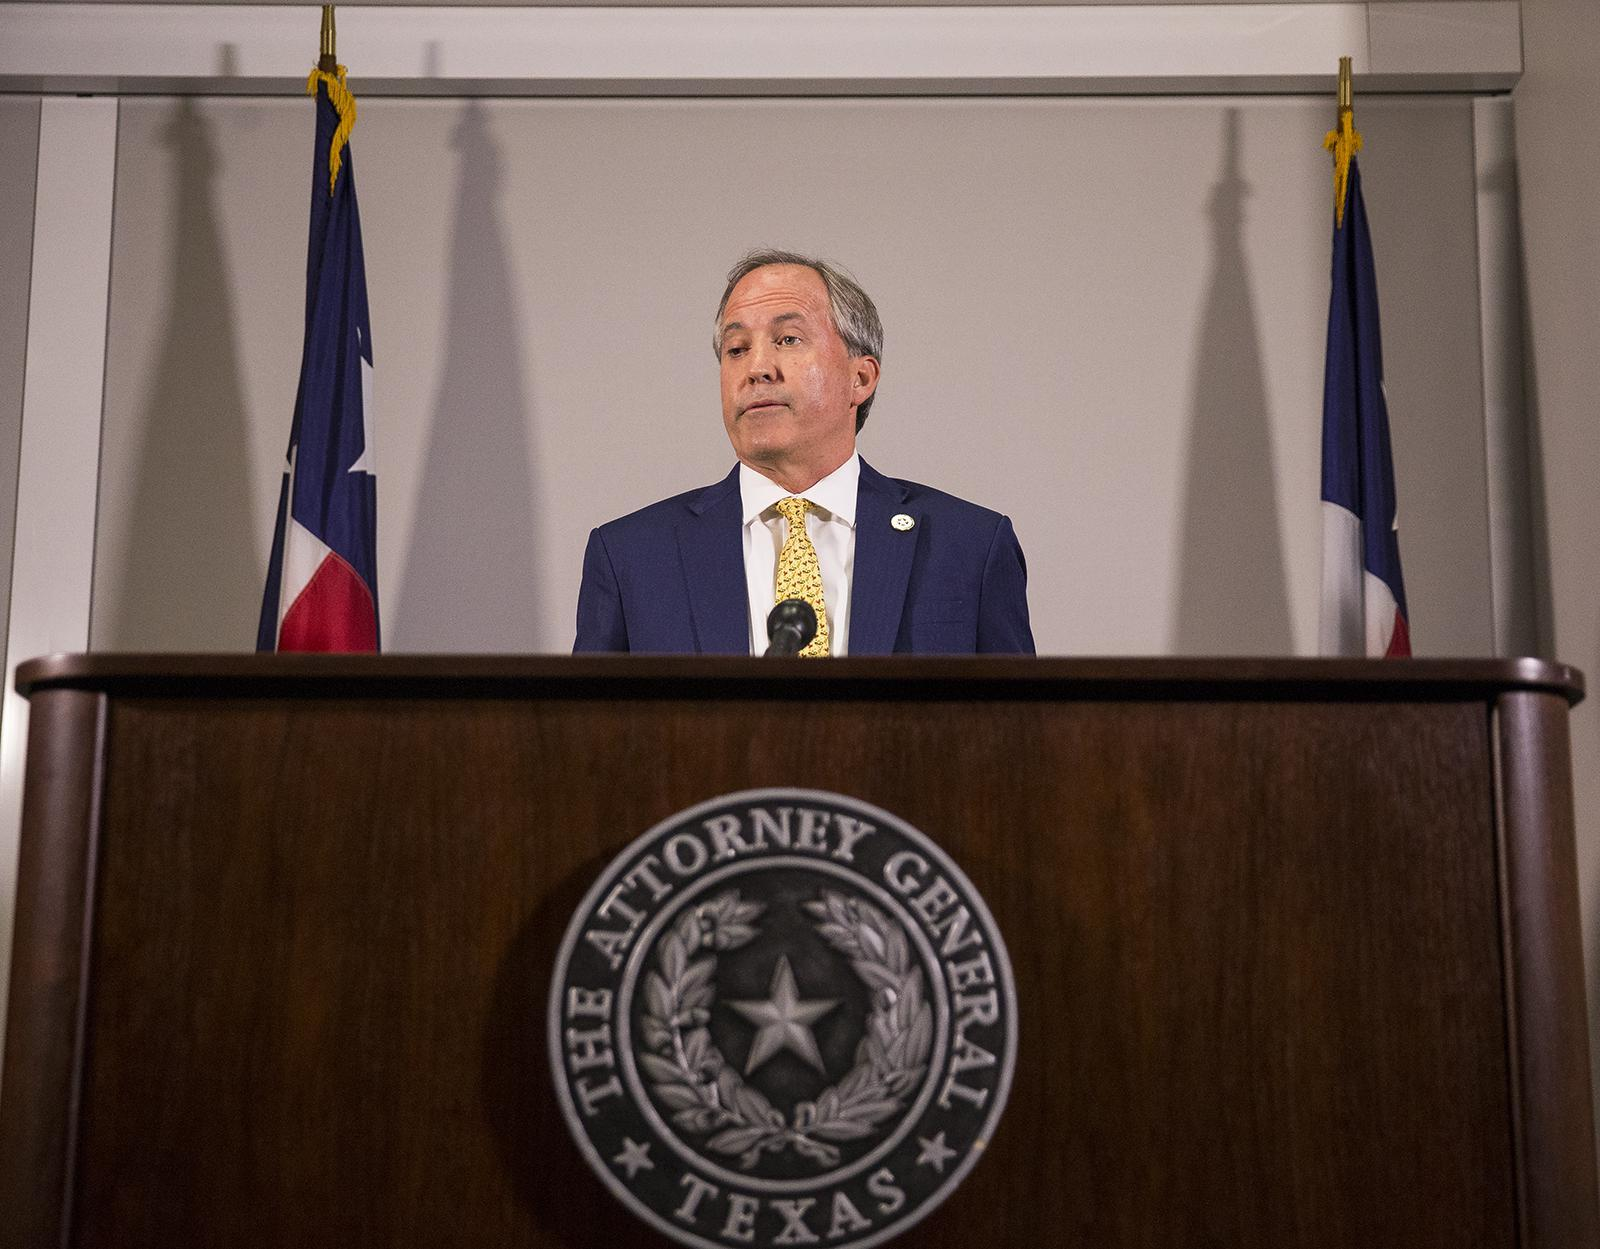 Texas AG Ken Paxton took bribes and abused office, top aides say in call for federal investigation